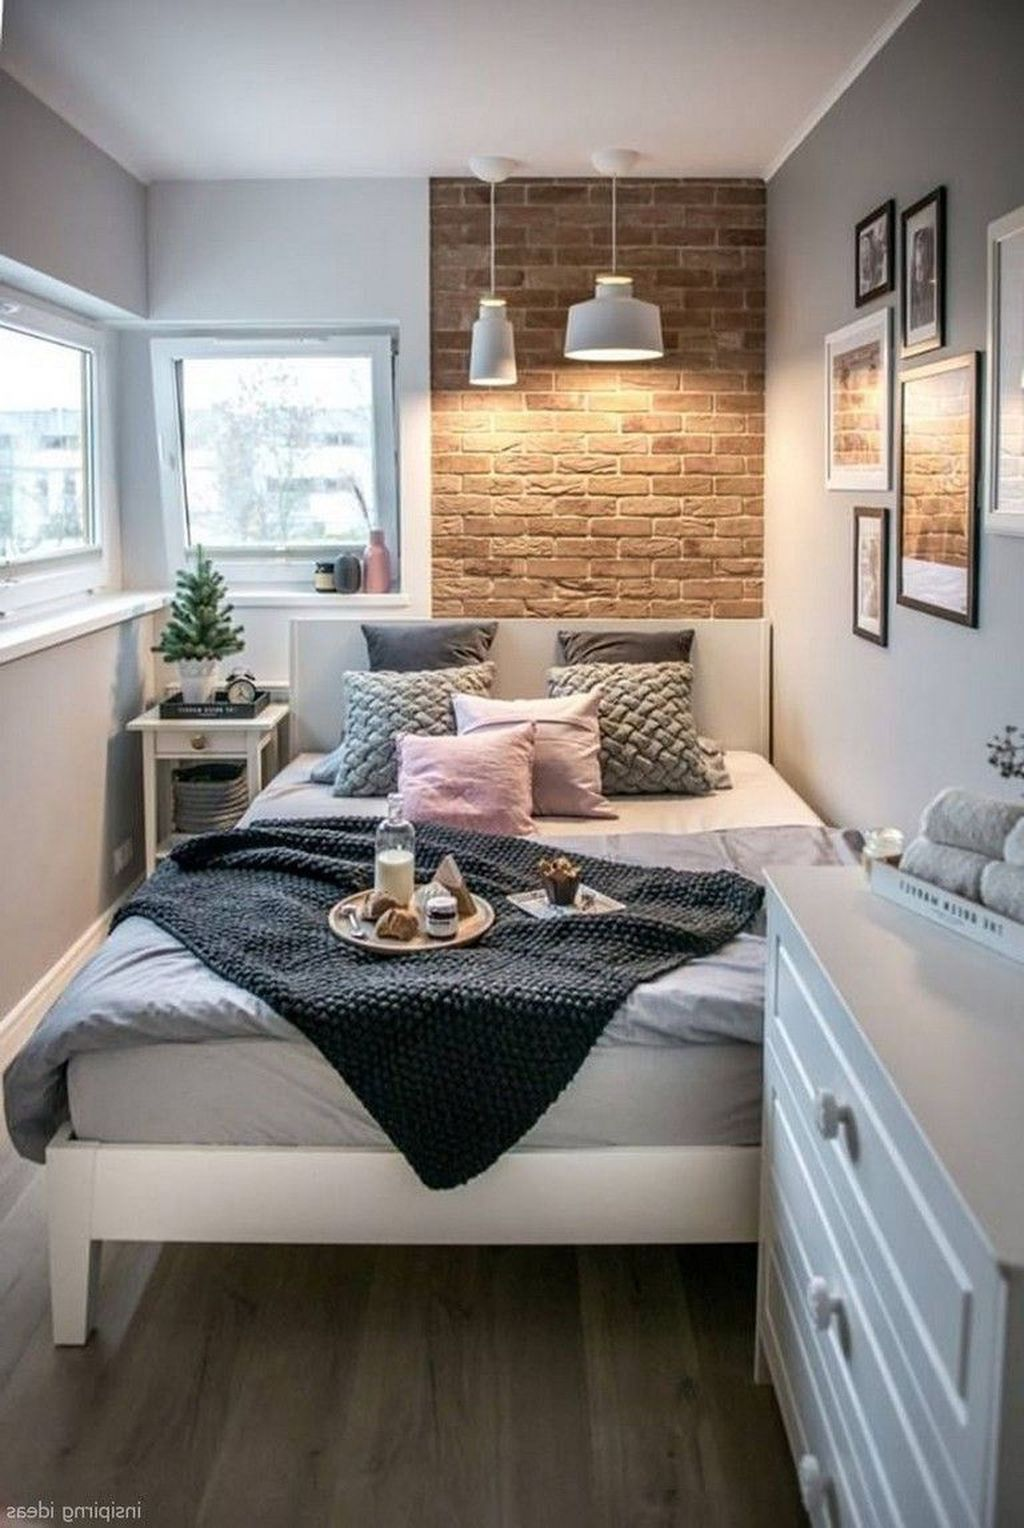 33 Awesome Modern Small Bedroom Design And Decor Ideas In 2020 Cozy Small Bedrooms Small Bedroom Ideas For Couples Small Bedroom Decor